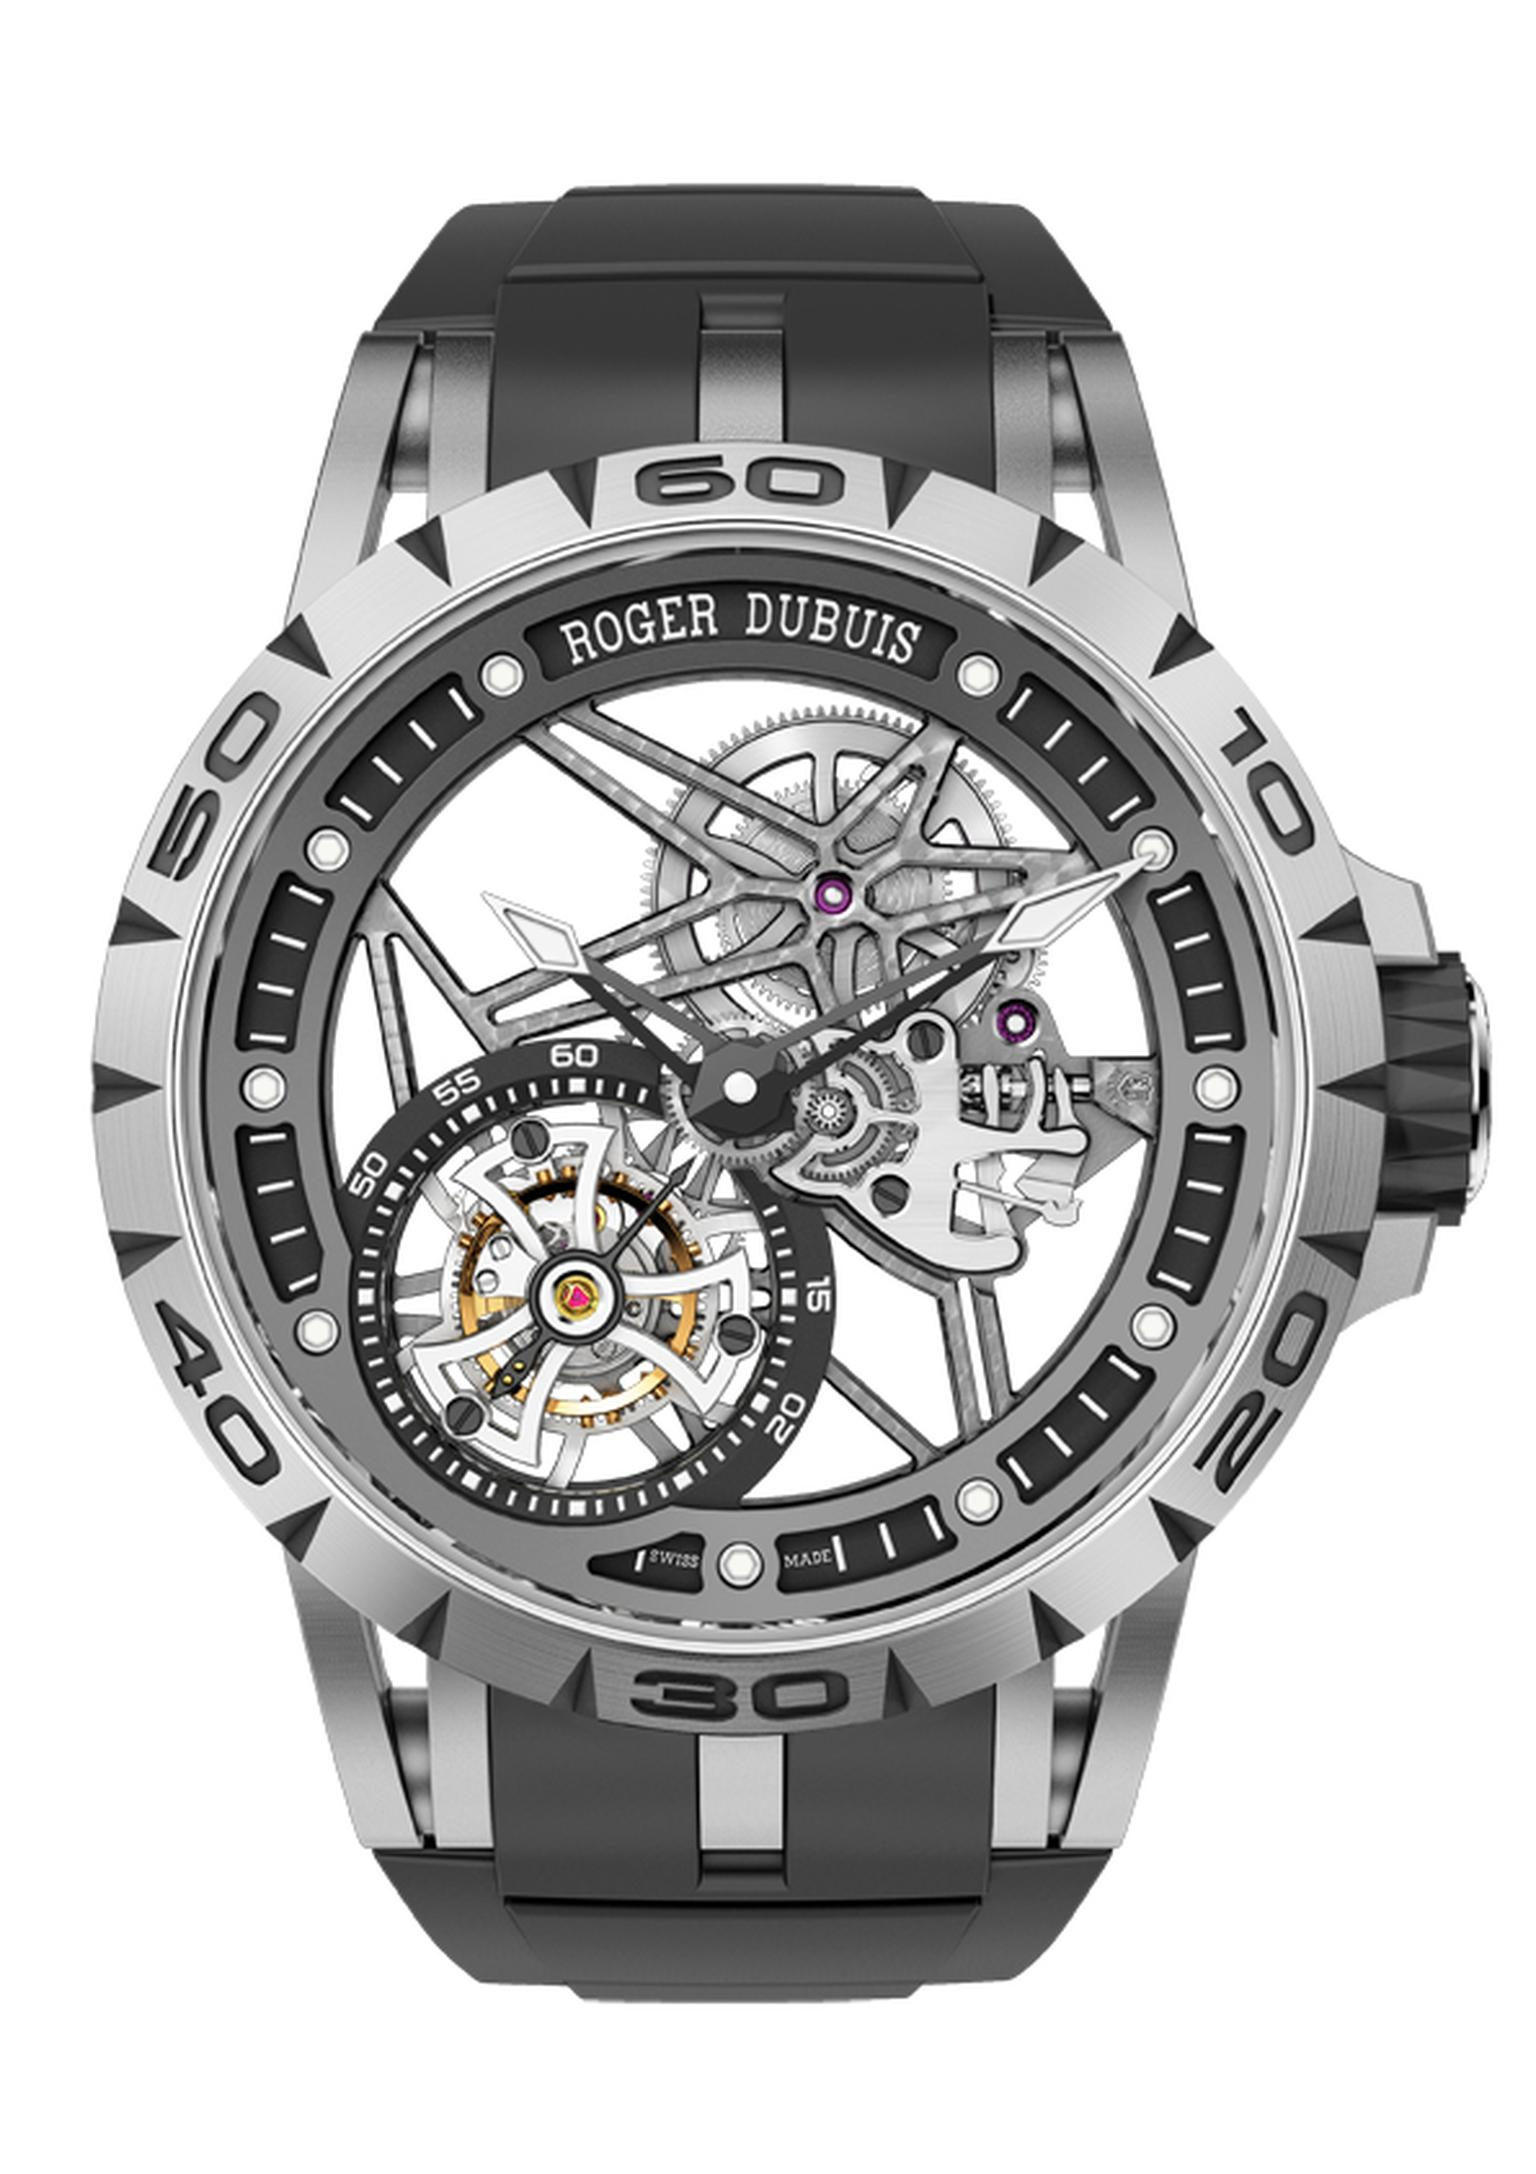 Roger Dubuis Excalibur Spider Skeleton Flying Tourbillon takes skeleton watches one step beyond the movement and extends its spidery web to just about everything skeletonisable on the watch: the case, the flange, the hands and the lugs.